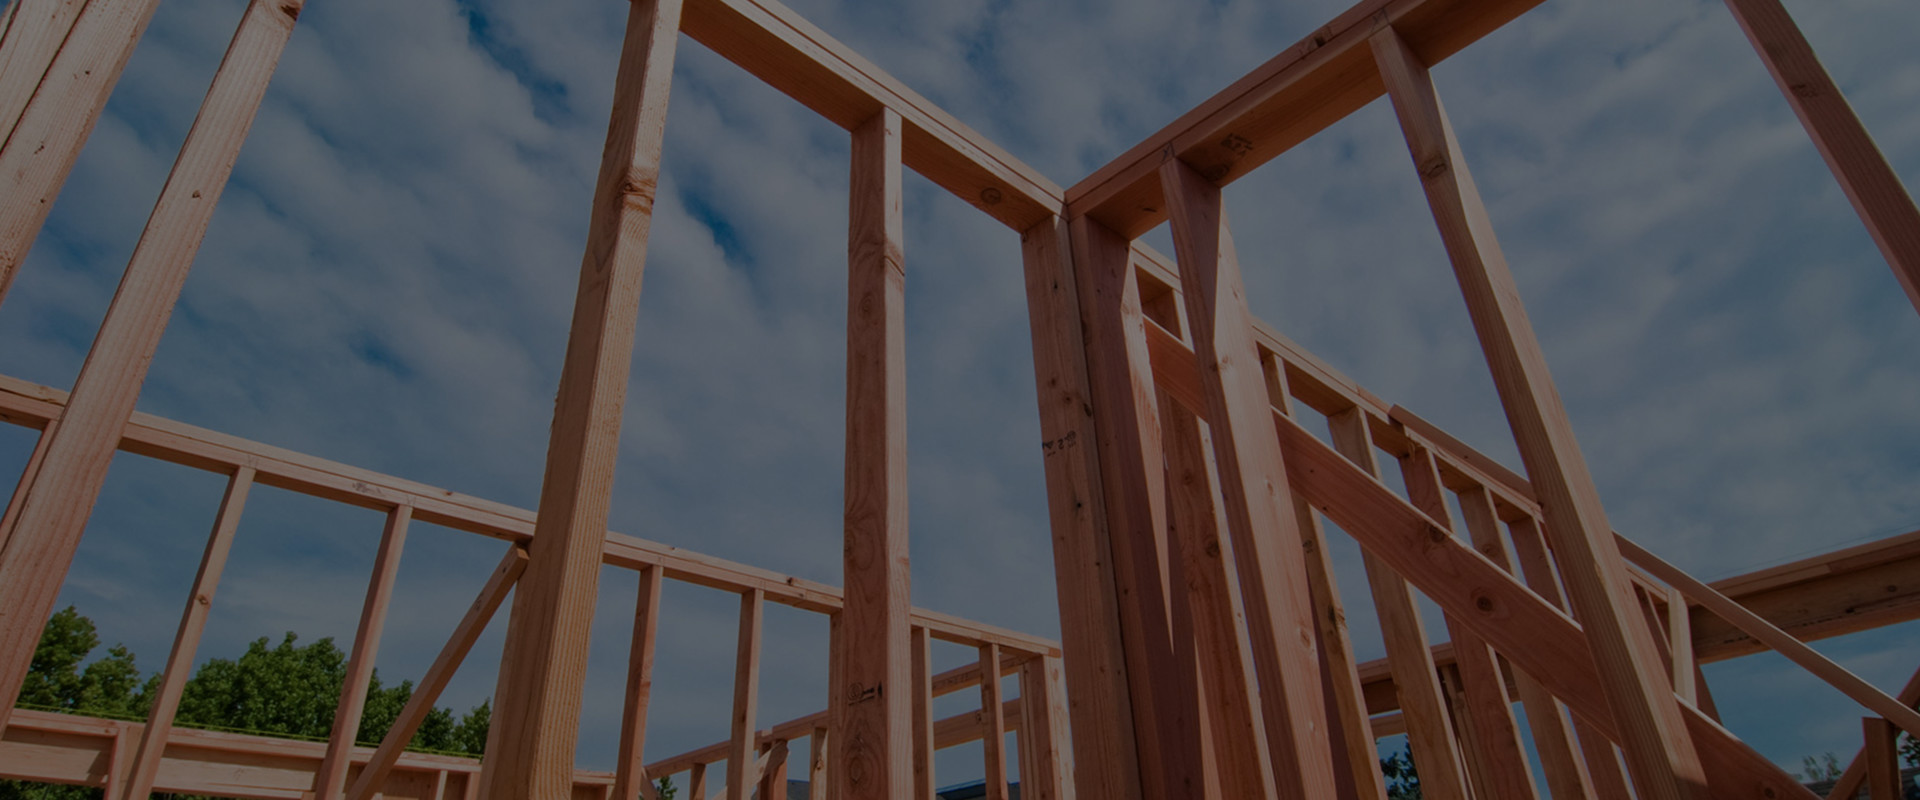 We Are Your Residential Construction Experts